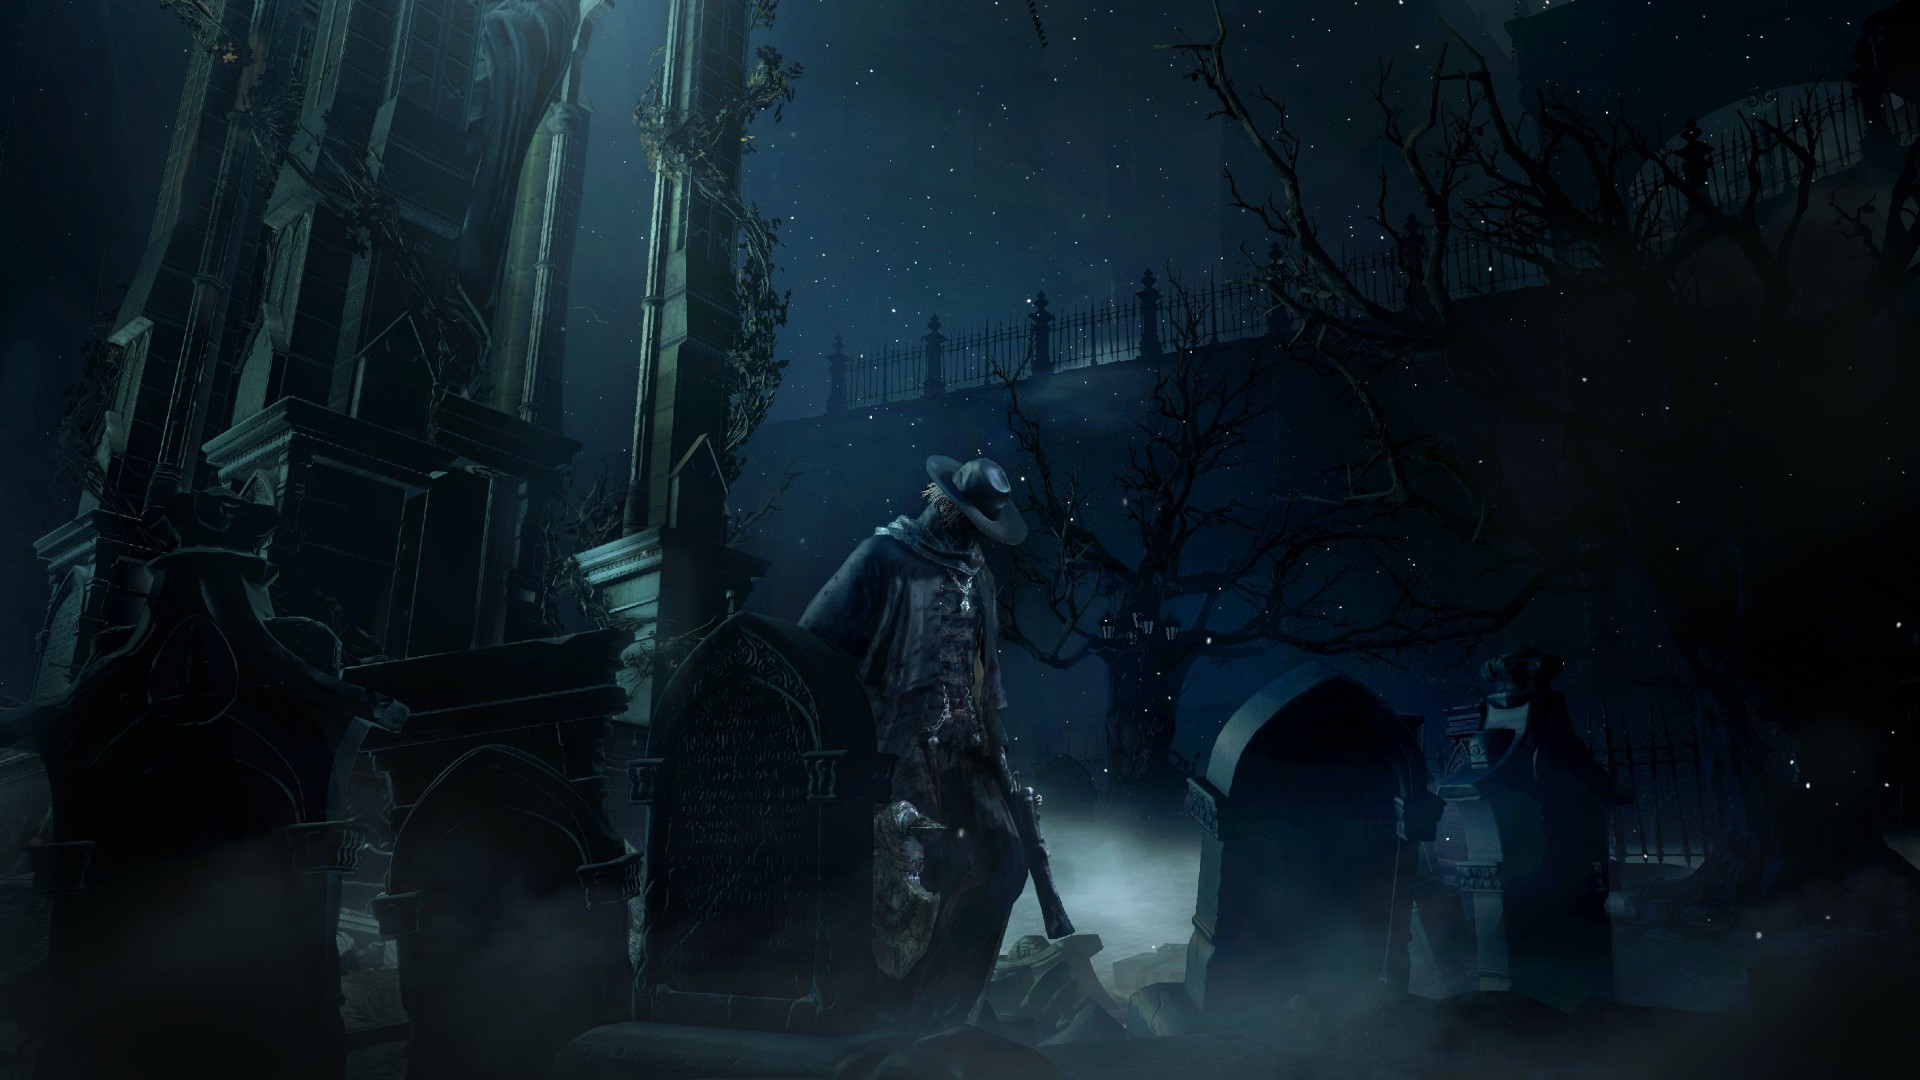 Bloodborne, gameplay, review, screenshot, interface, game, Yharnam, Best Games 2015, Cleric, beast, darkness, fog (horizontal)